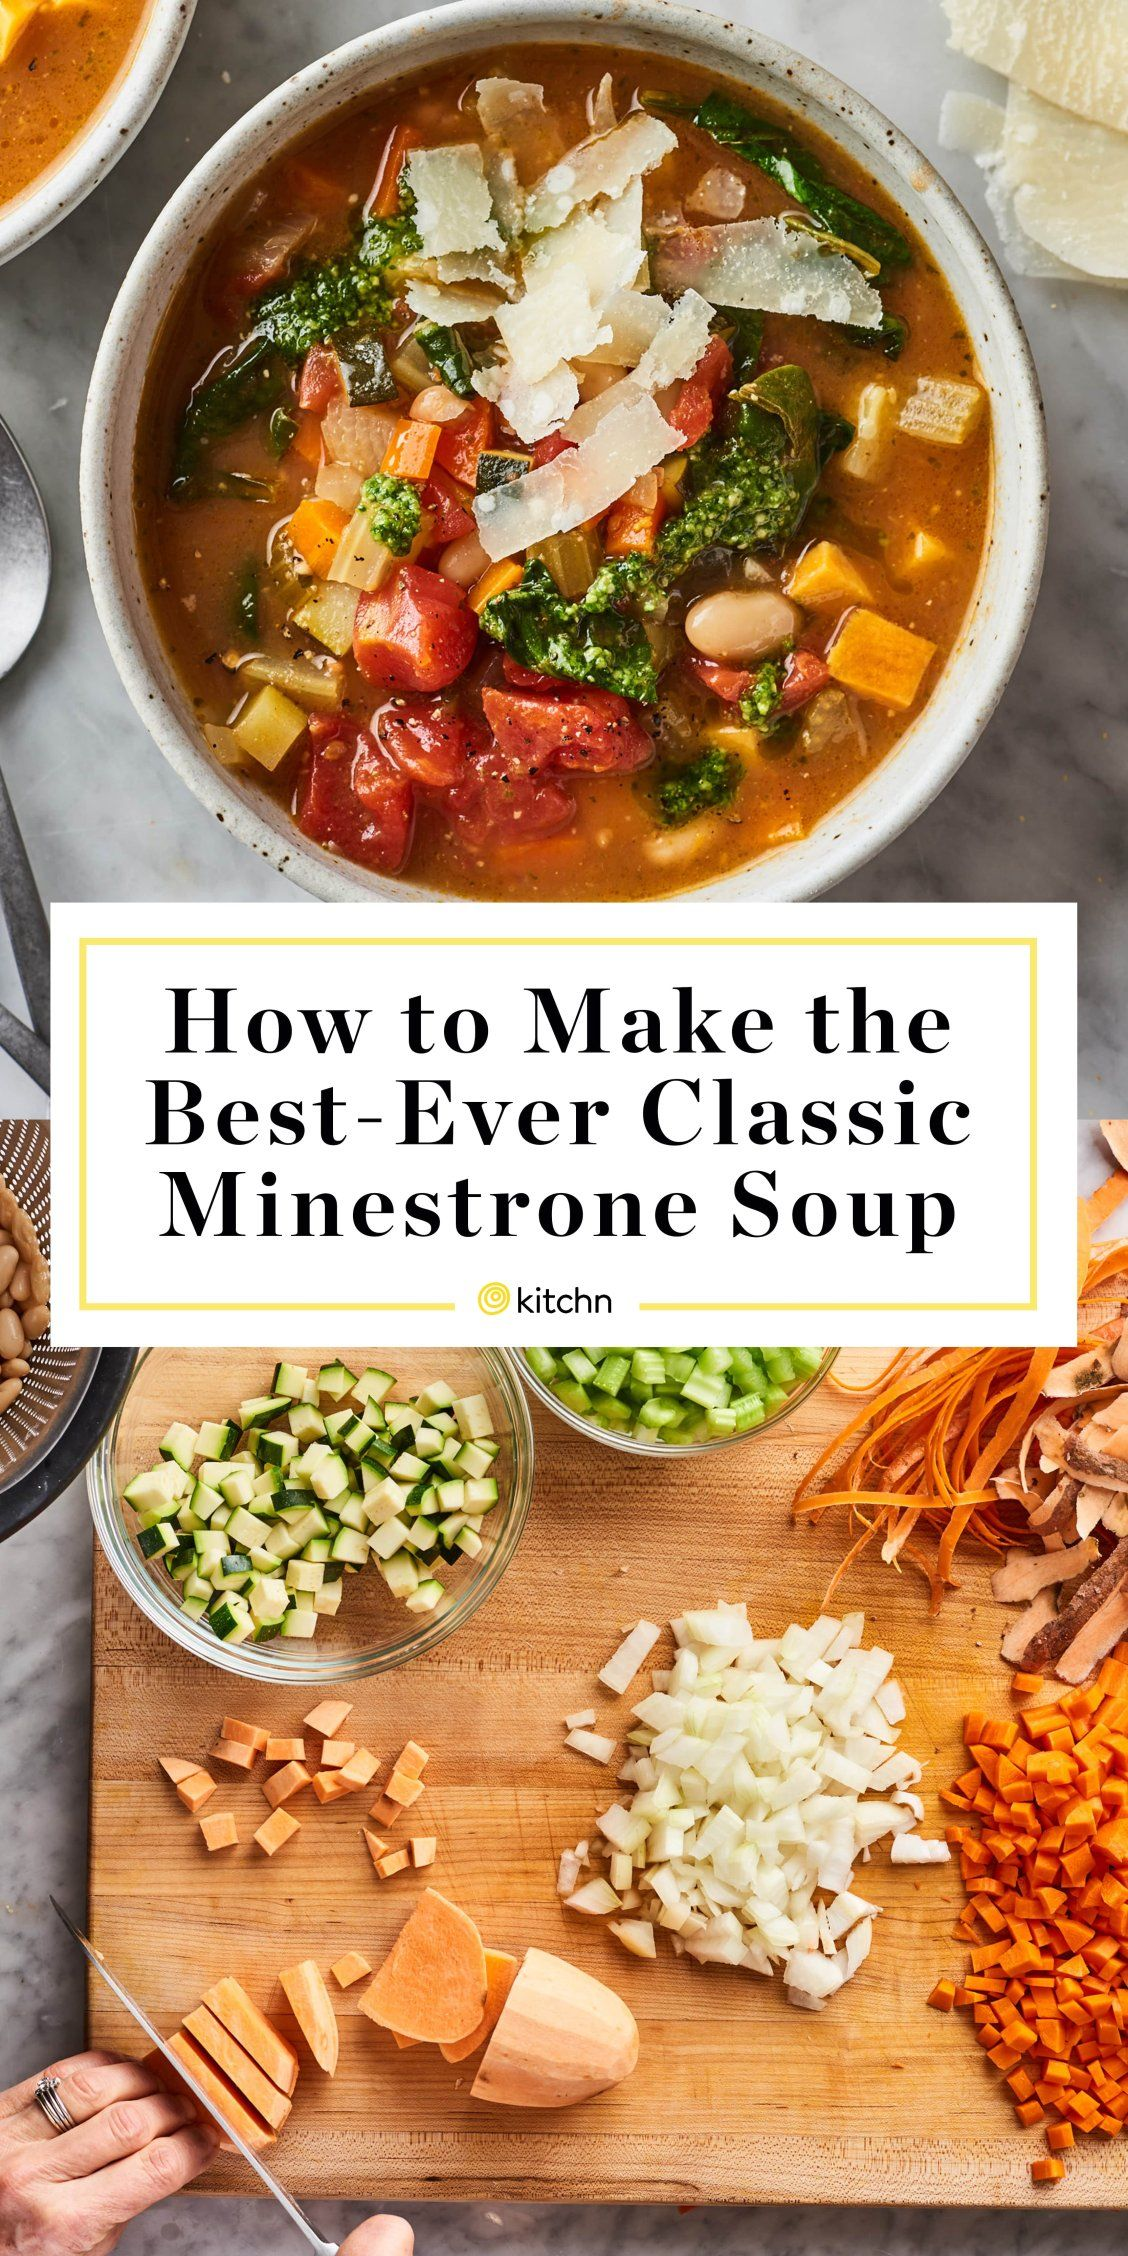 How To Make The Best Ever Classic Minestrone Soup